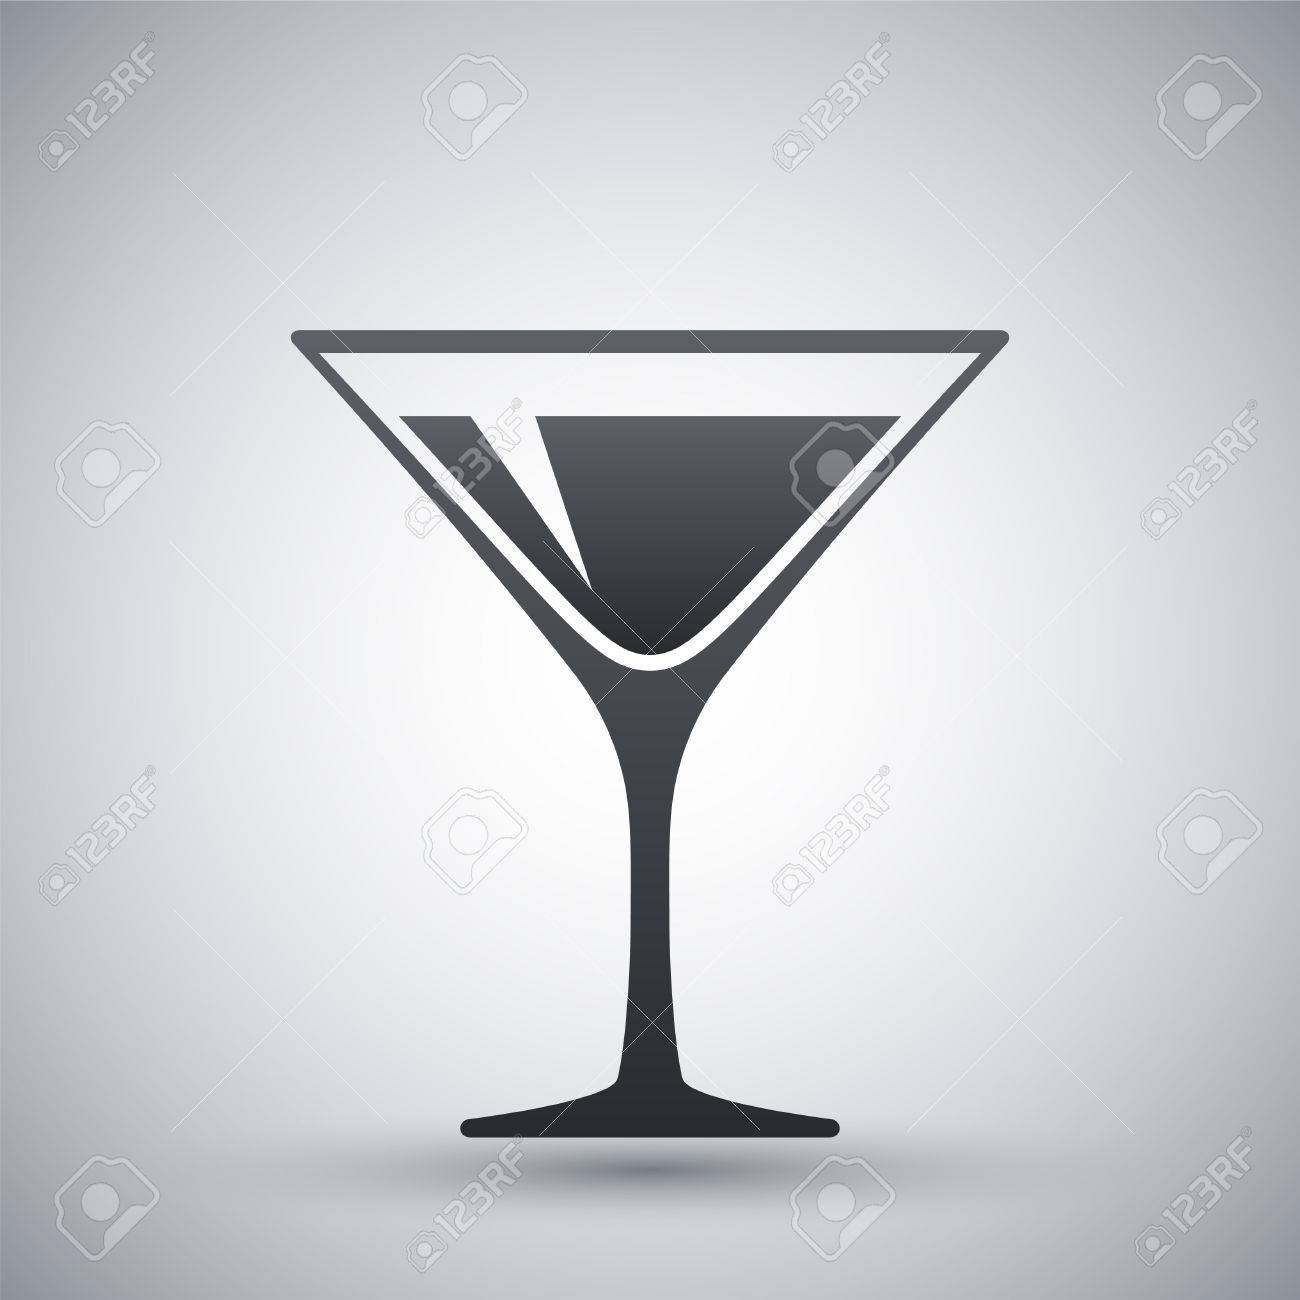 martini glass icon vector royalty free cliparts vectors and stock rh 123rf com